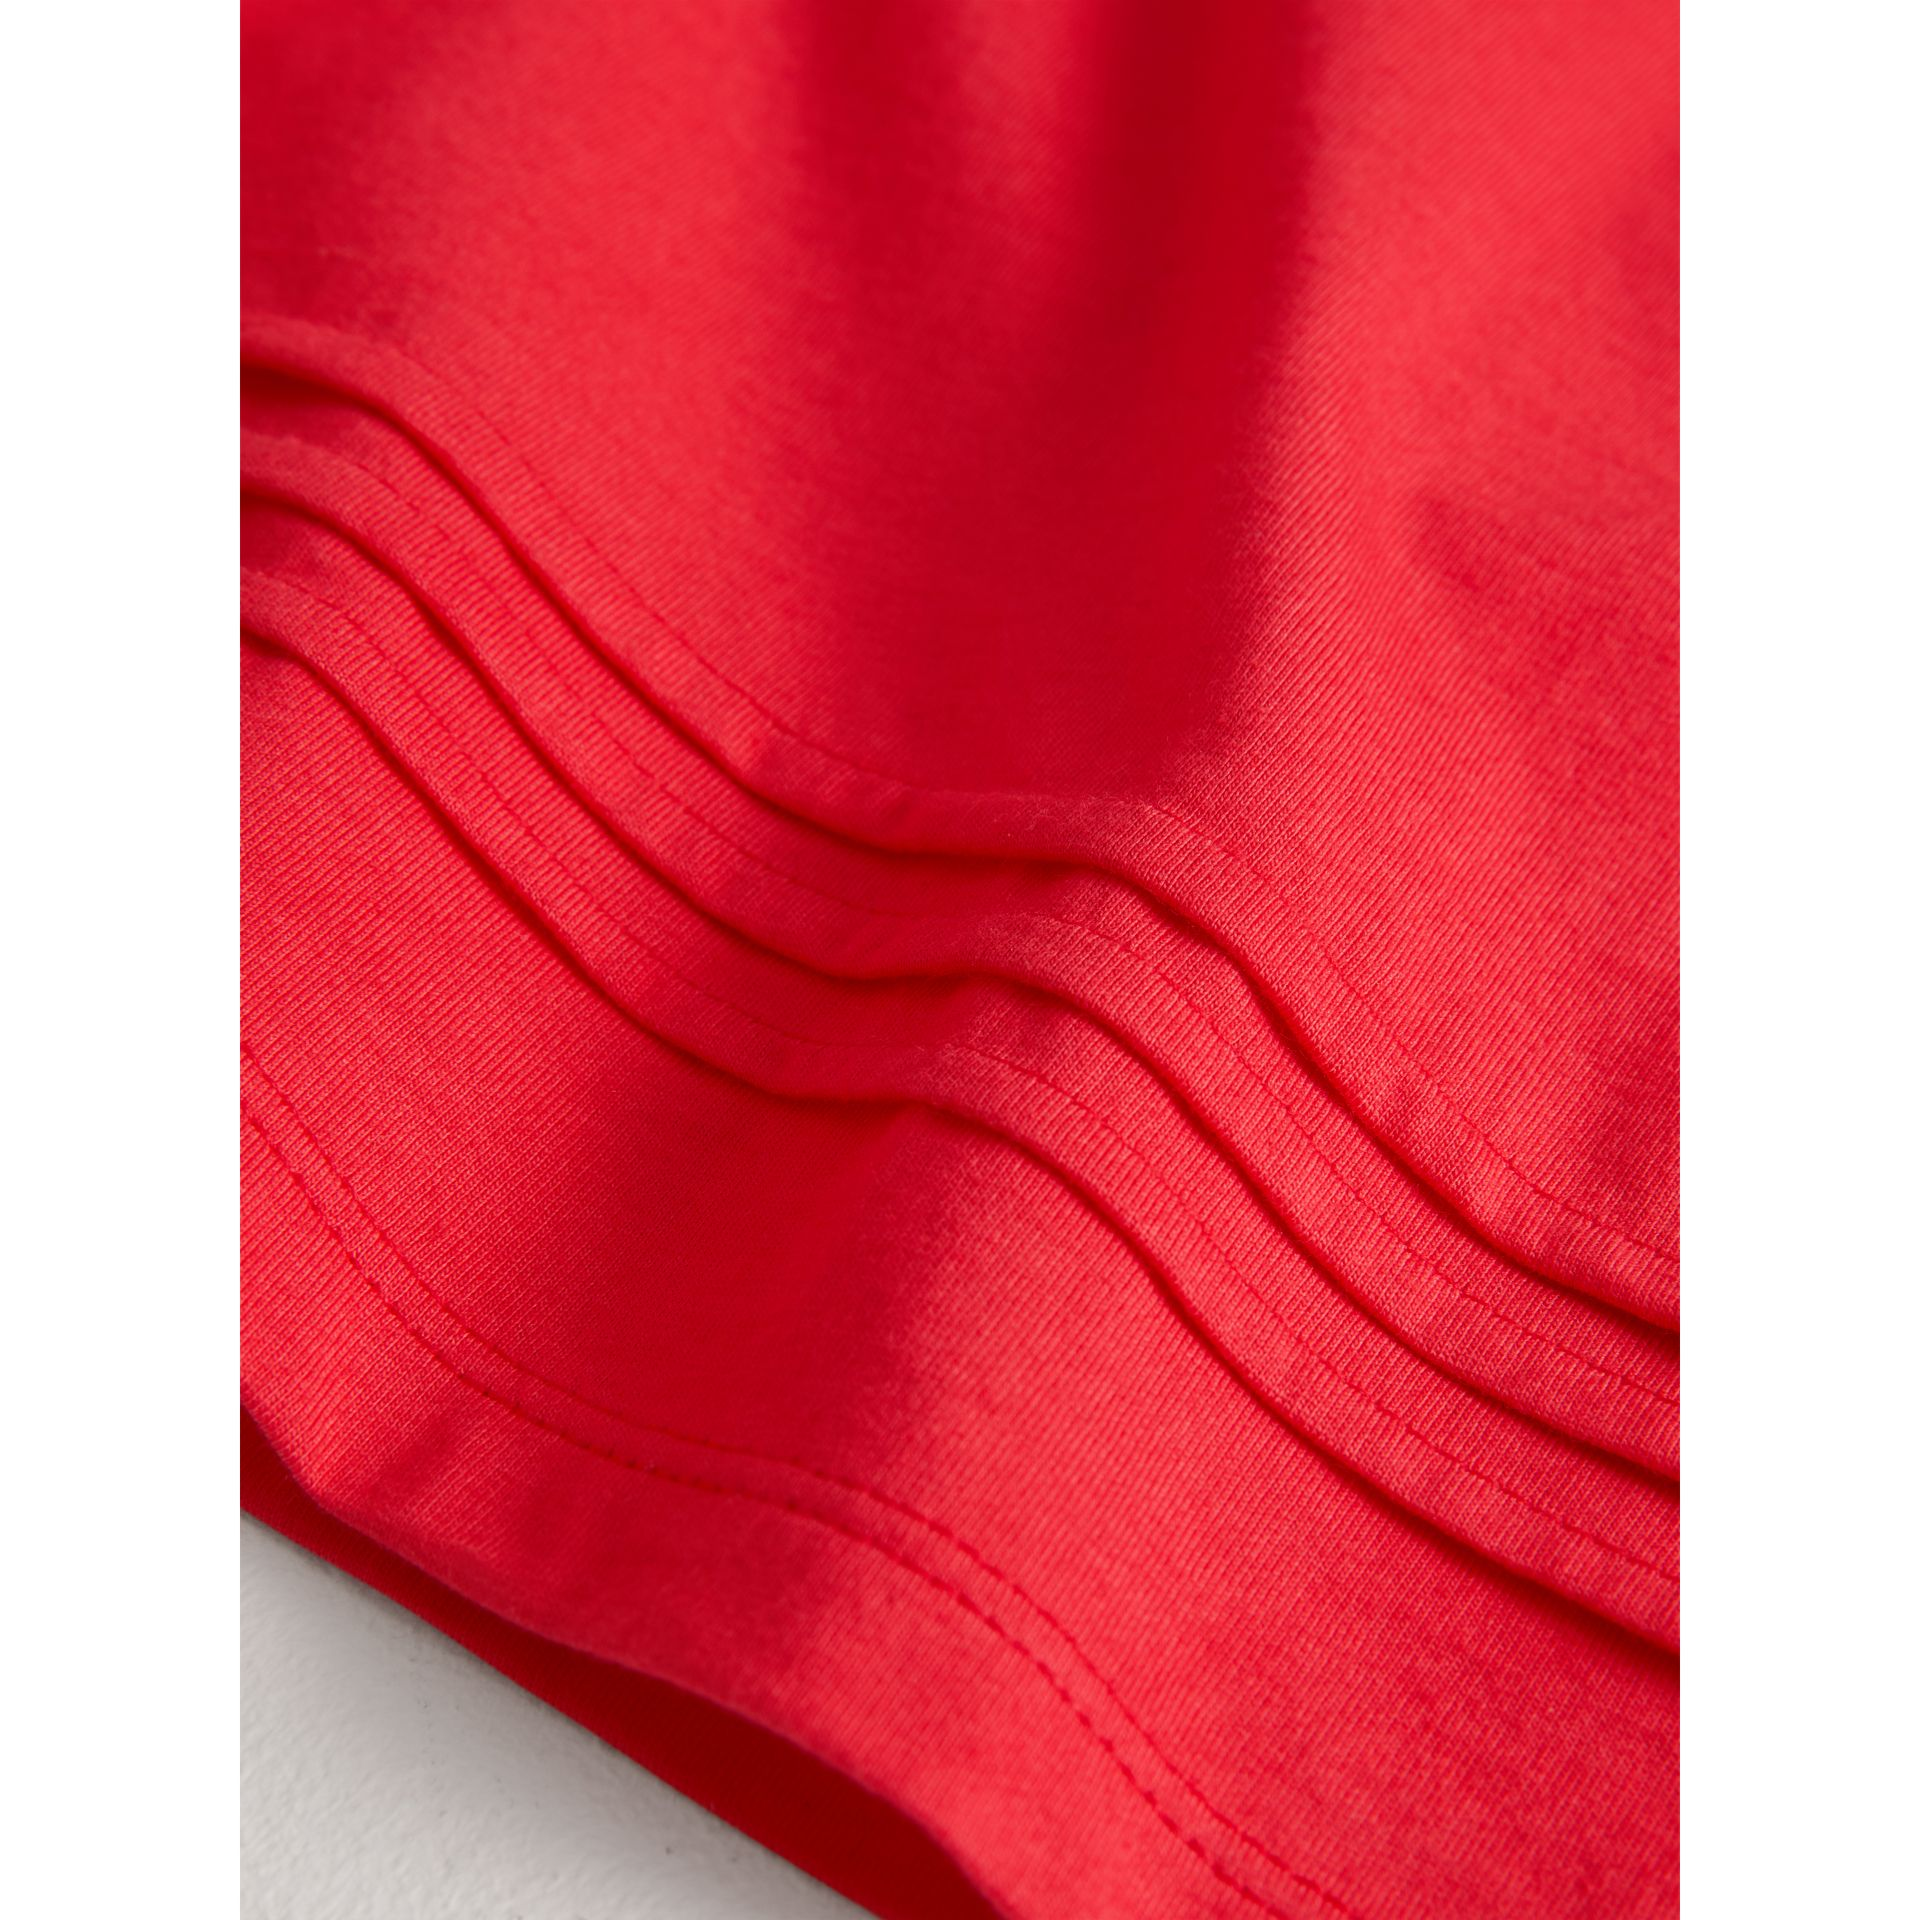 Pleat and Check Detail Cotton T-shirt in Bright Orange Red | Burberry - gallery image 1